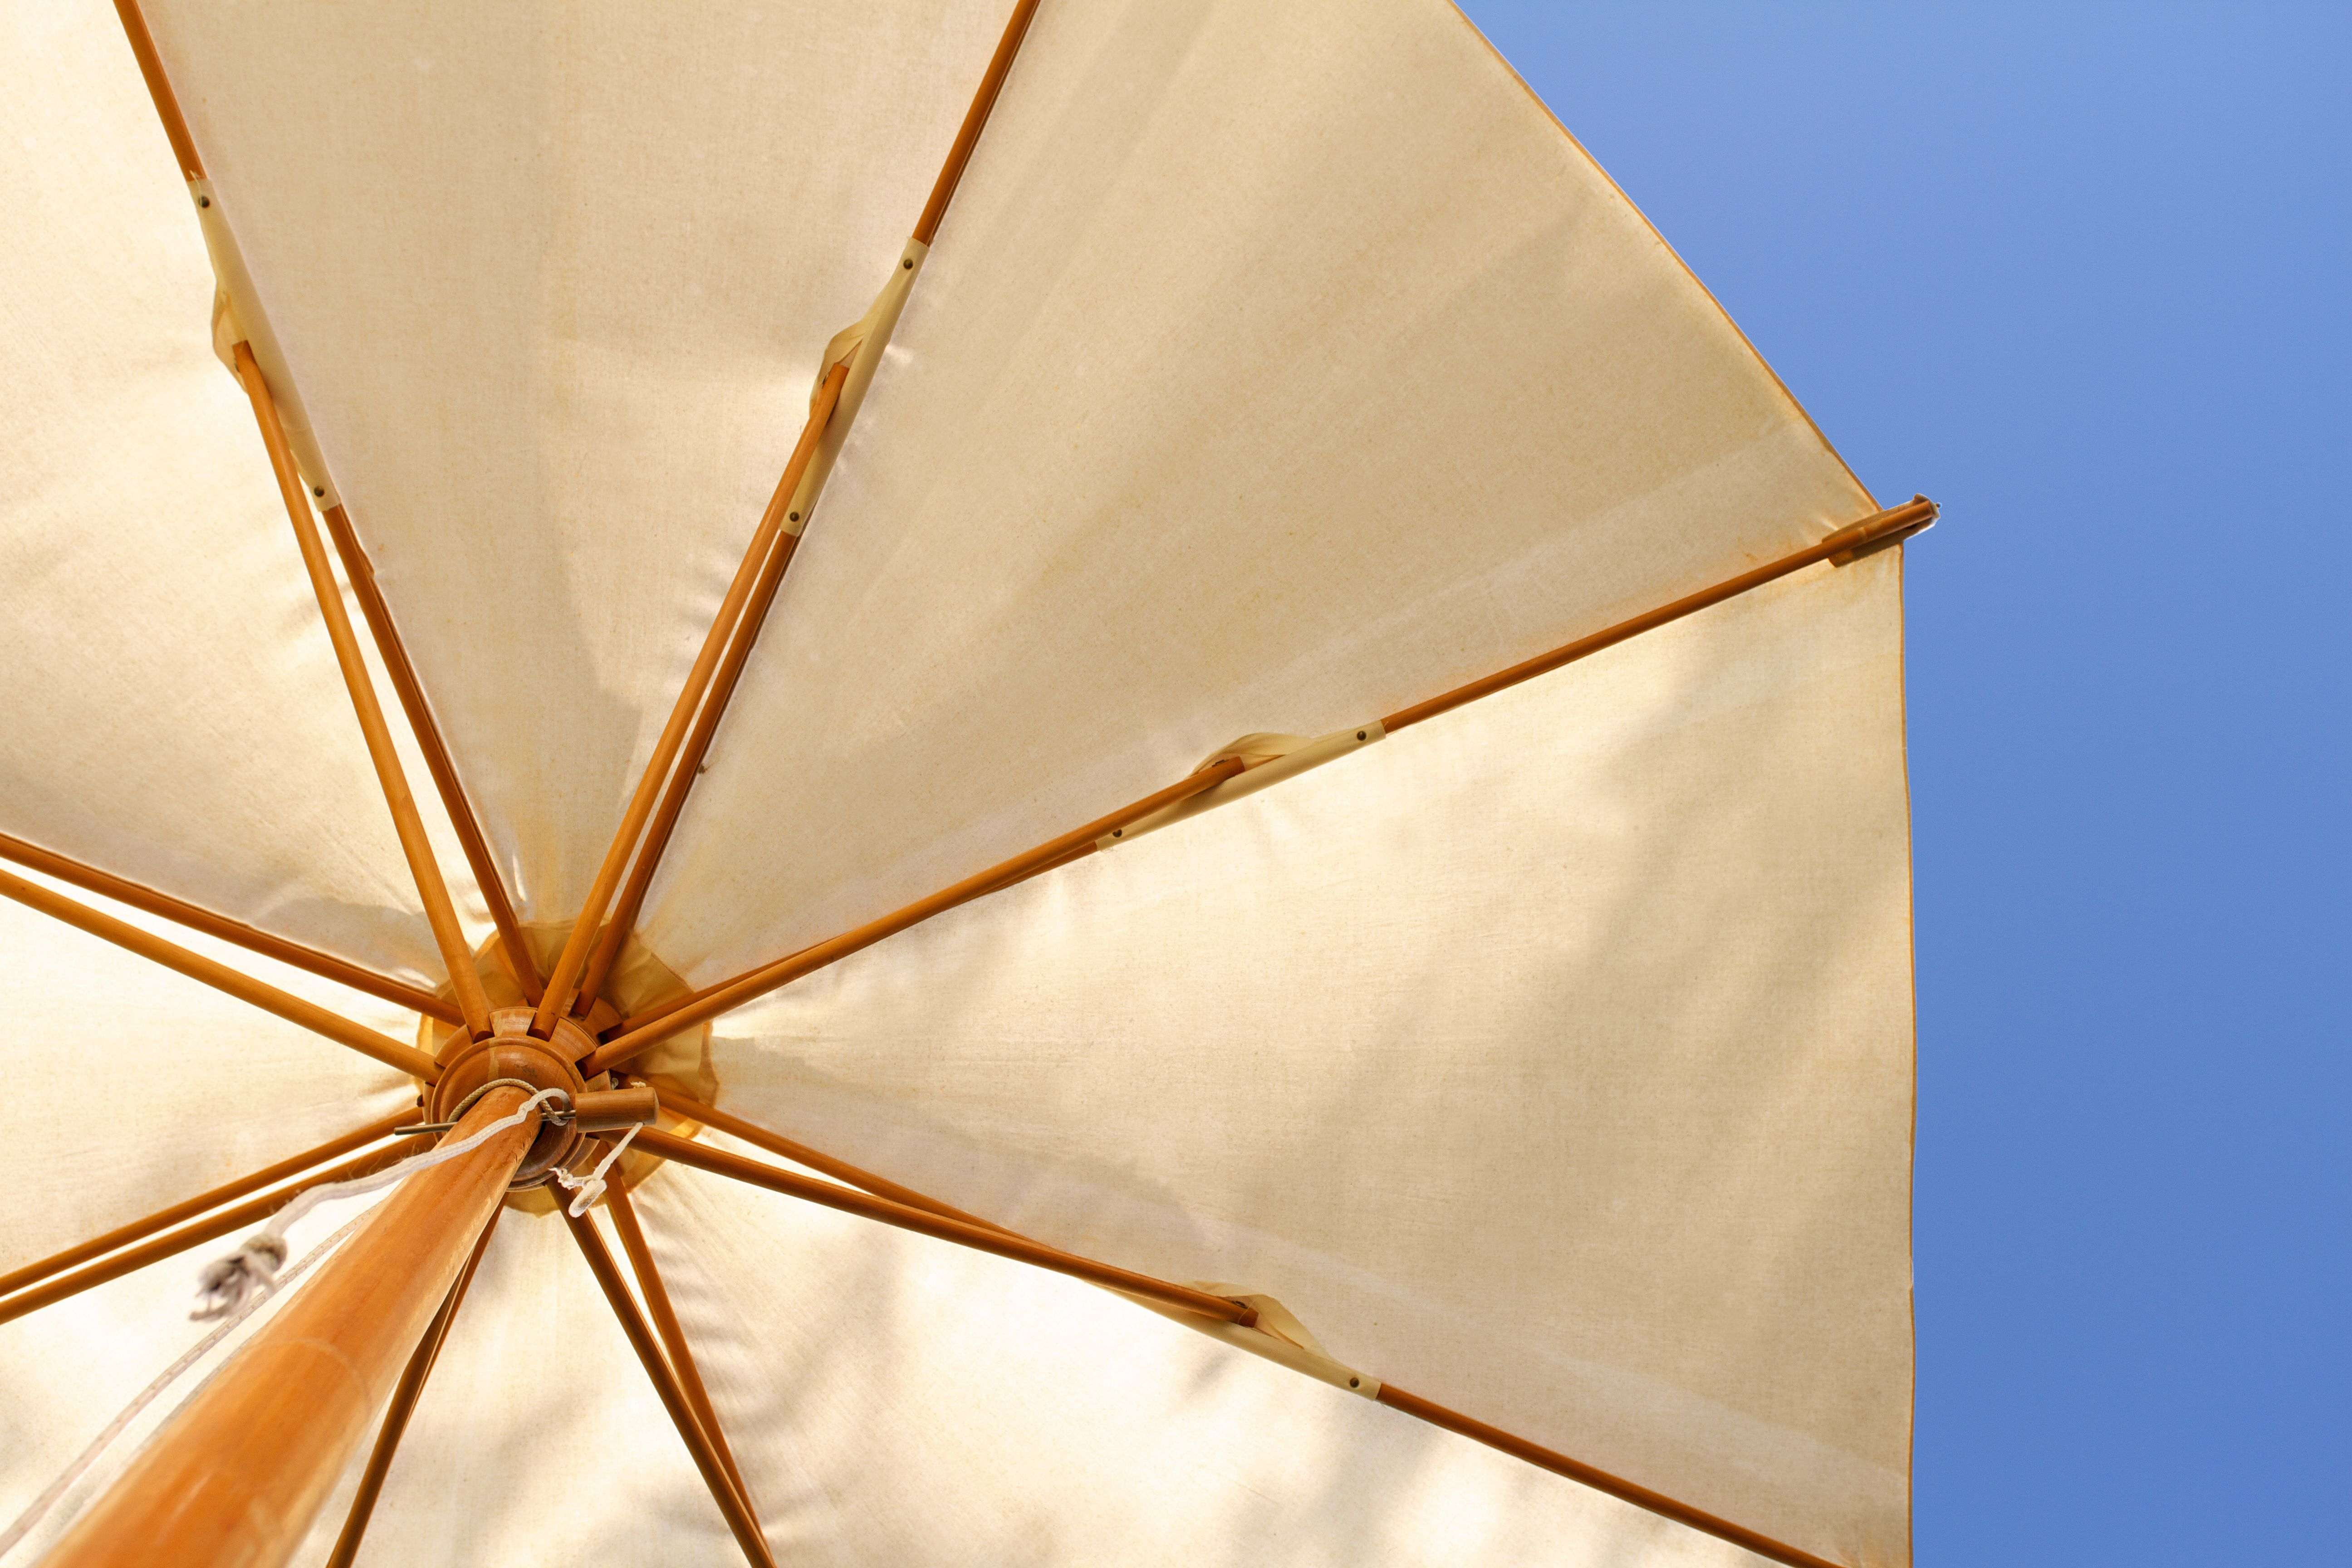 Parasol or gazebo: which is right for your garden?